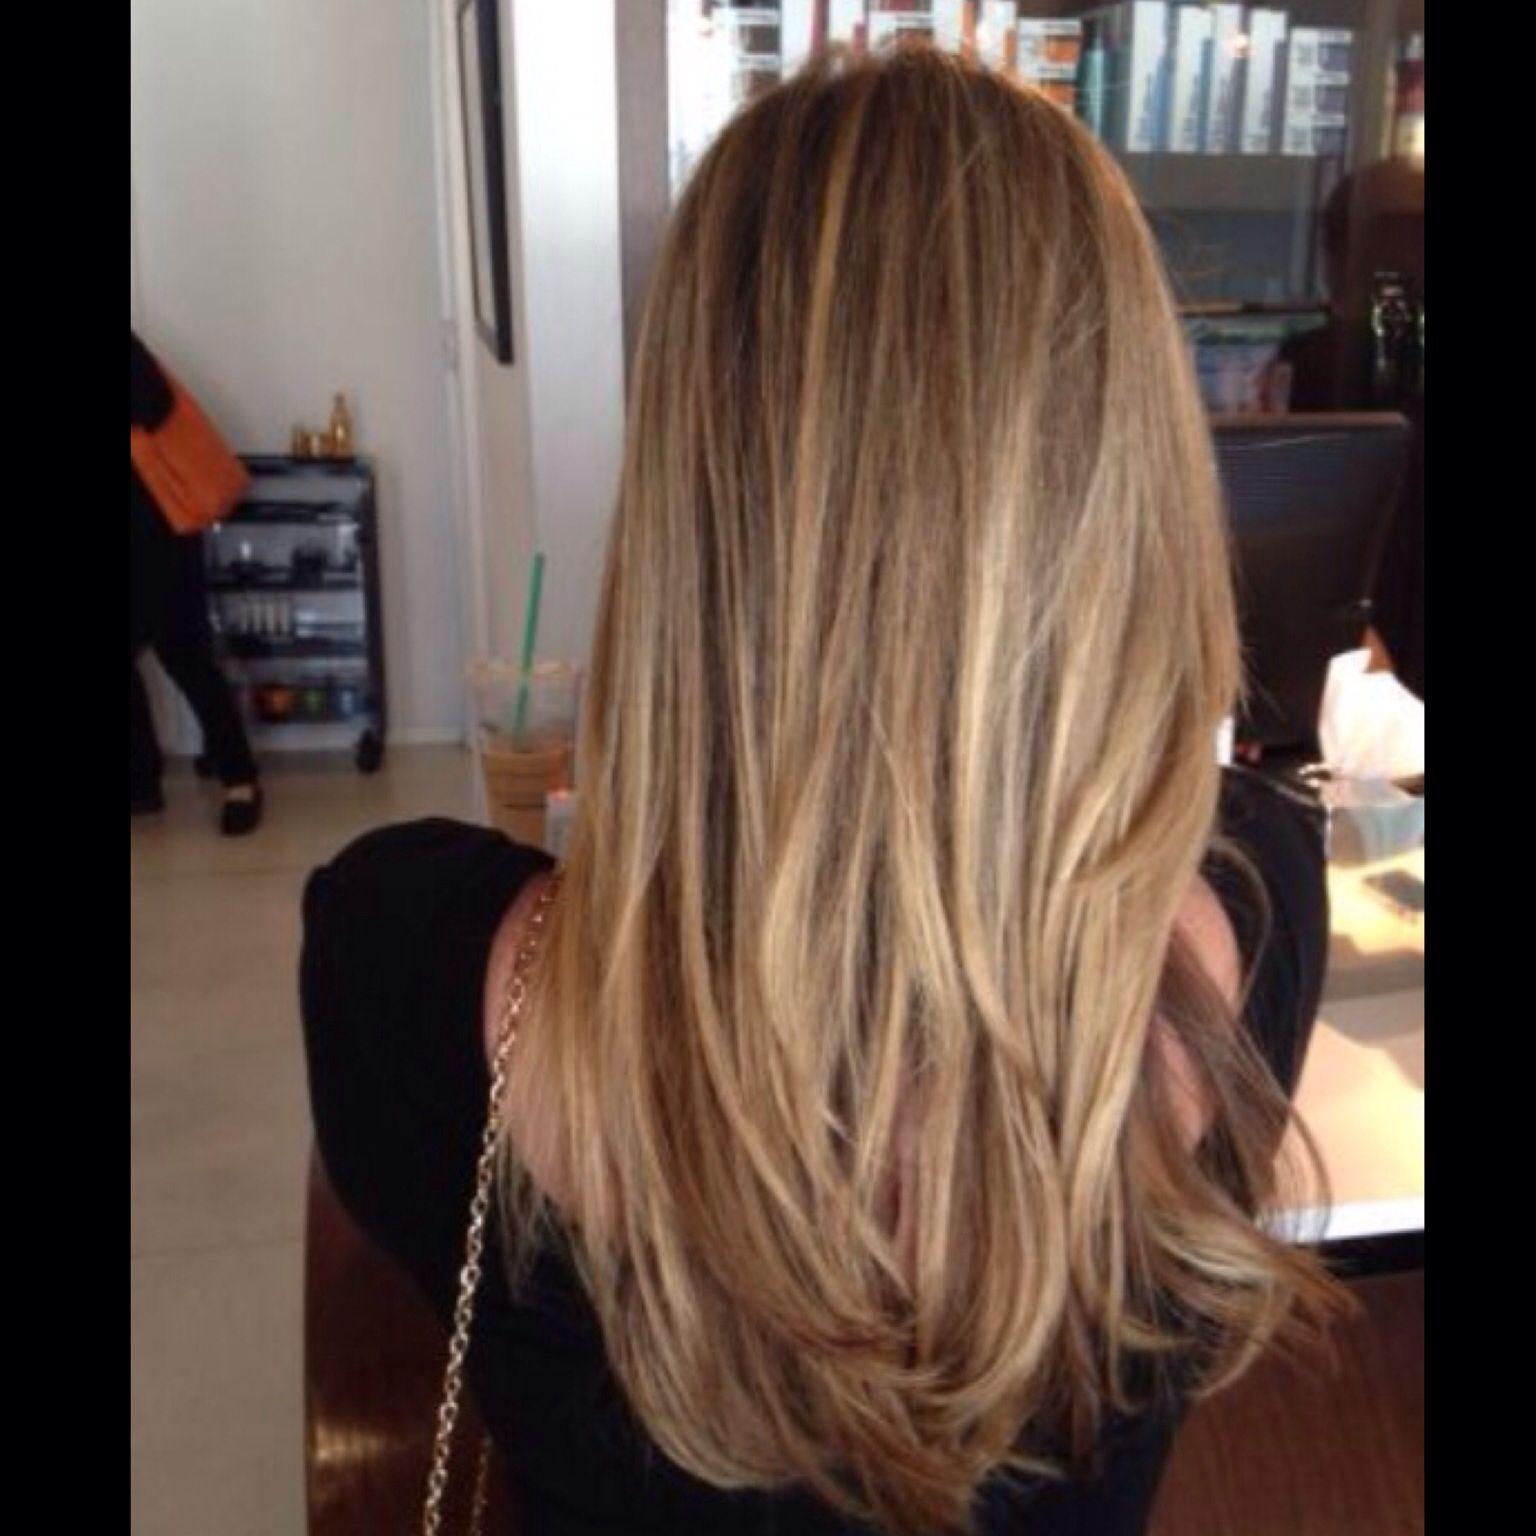 Hair color all about hair pinterest hair coloring and hair style